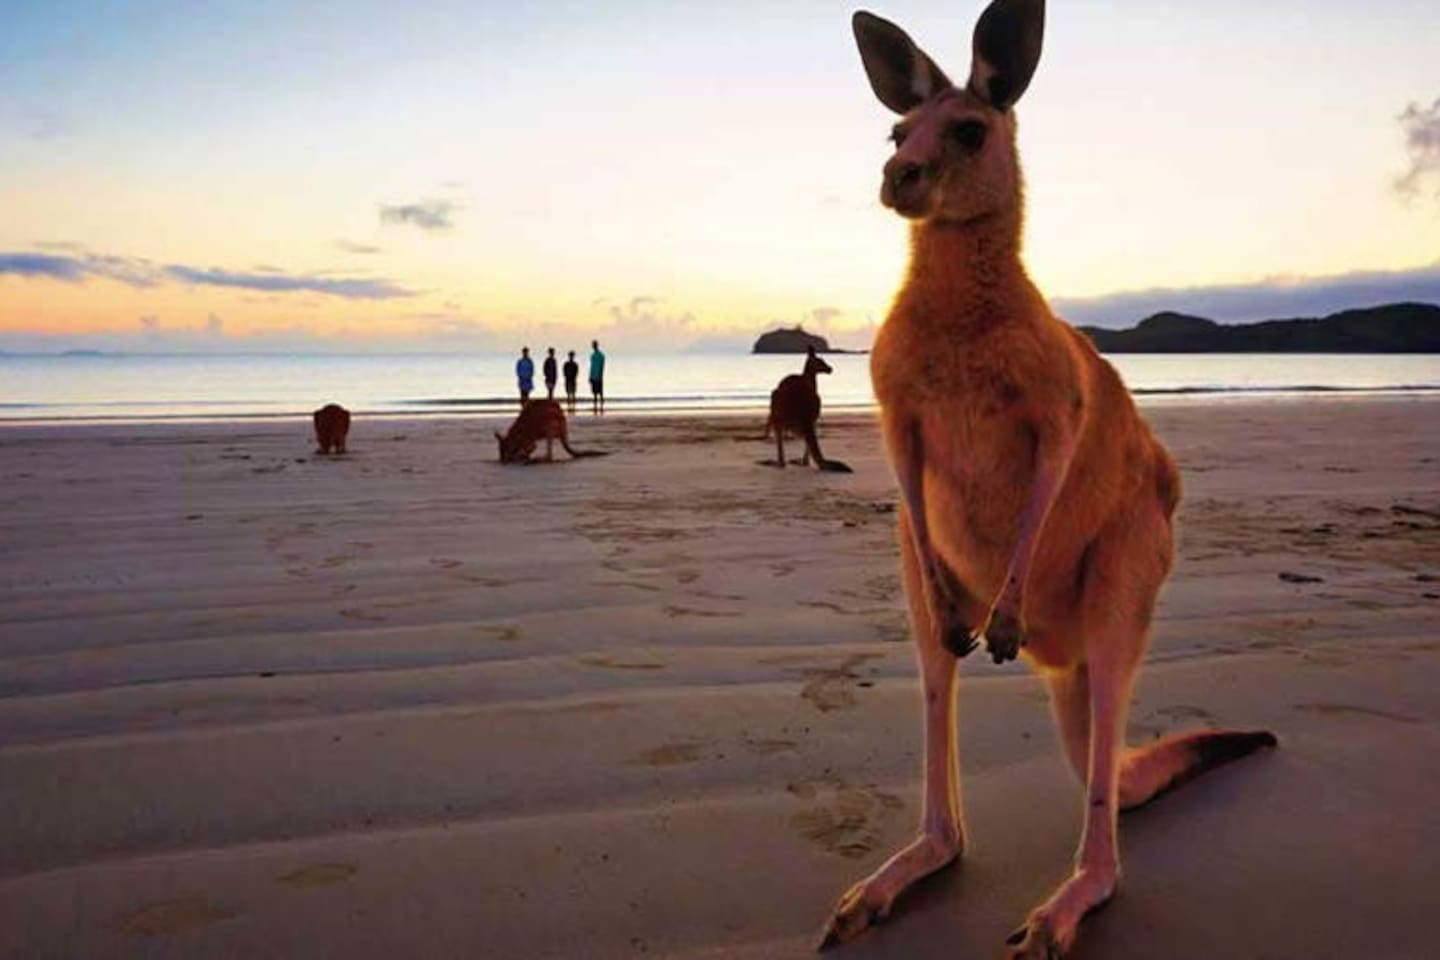 Say hello to the Wallabies at Beautiful Cape Hillsborough